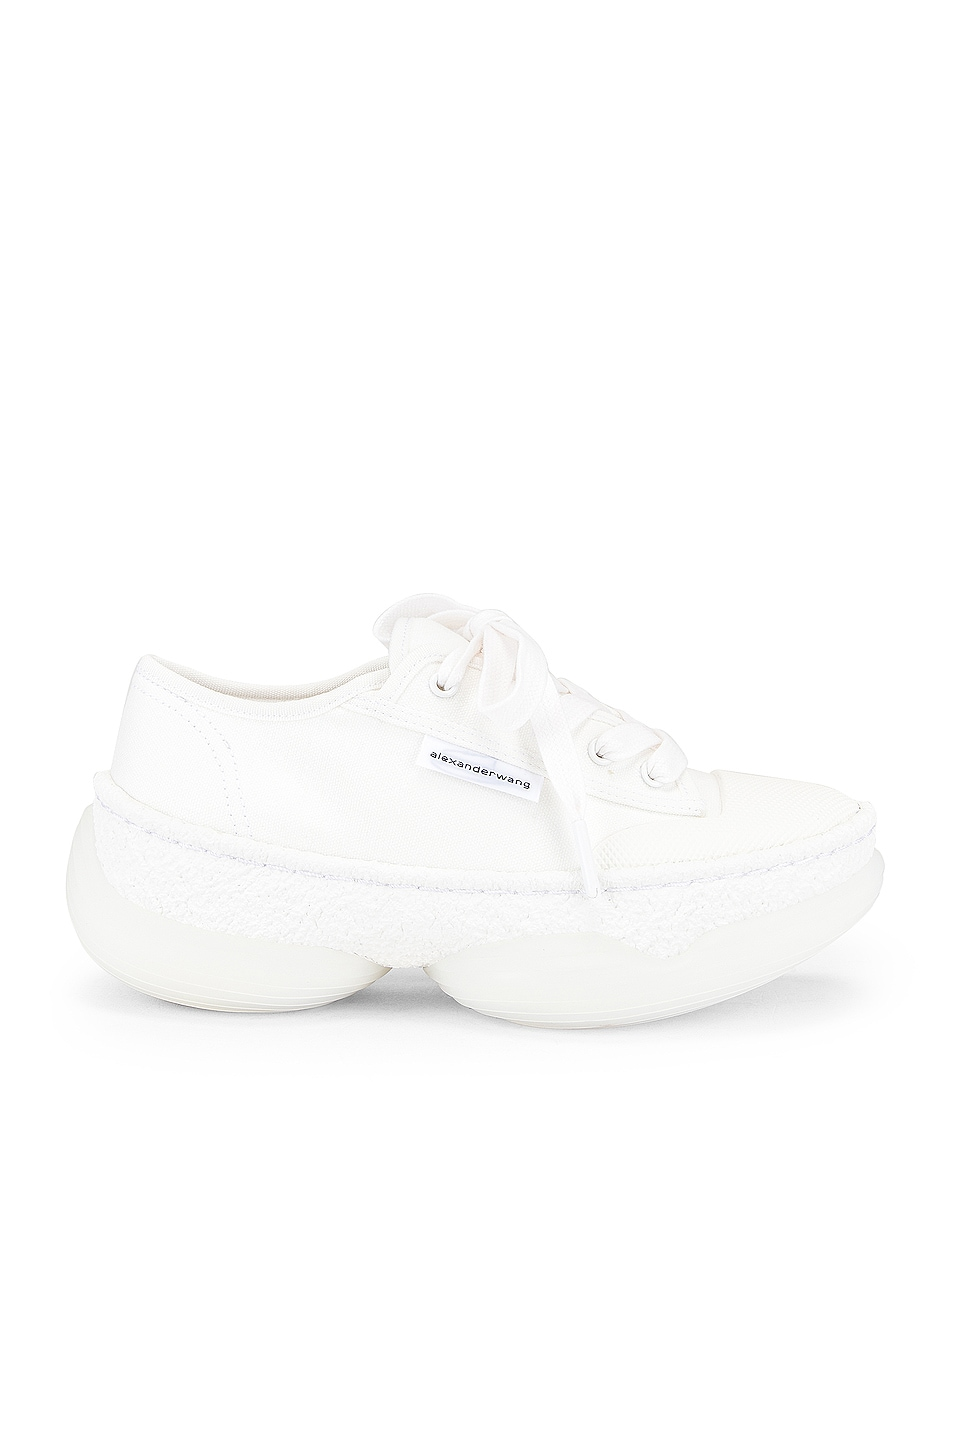 Image 1 of Alexander Wang A1 Low Top Sneaker in White